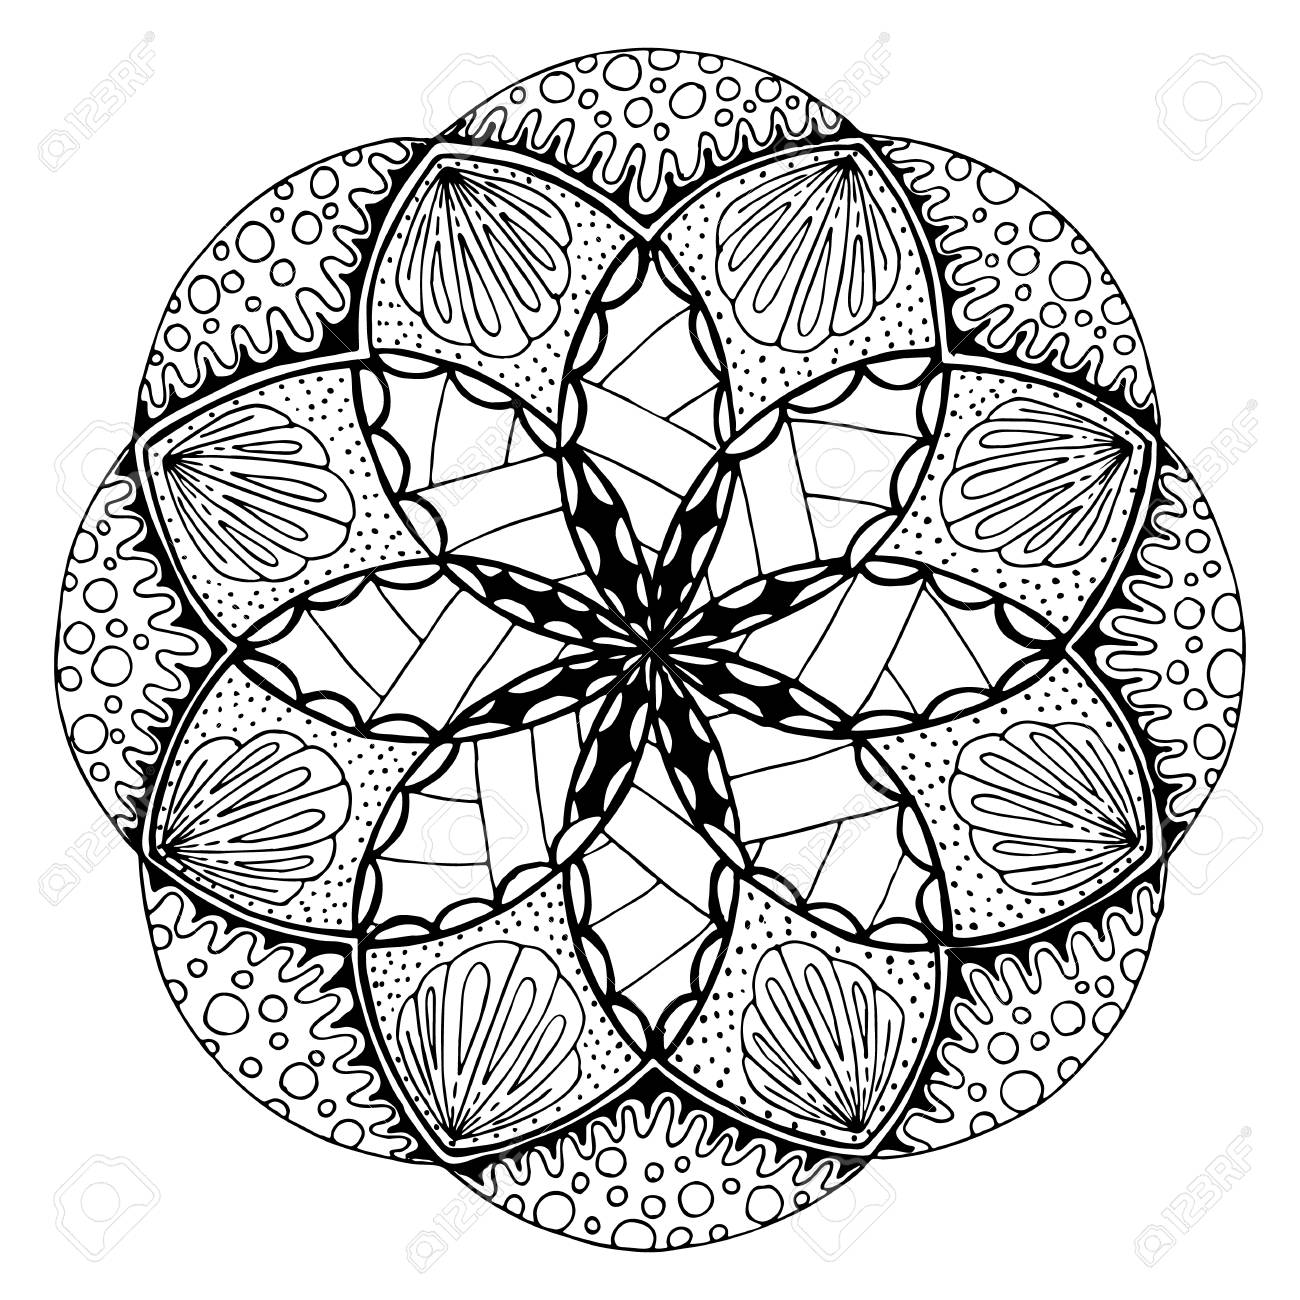 1300x1300 Hand Drawing Mandala, Round Floral Ornament. Pattern For Coloring